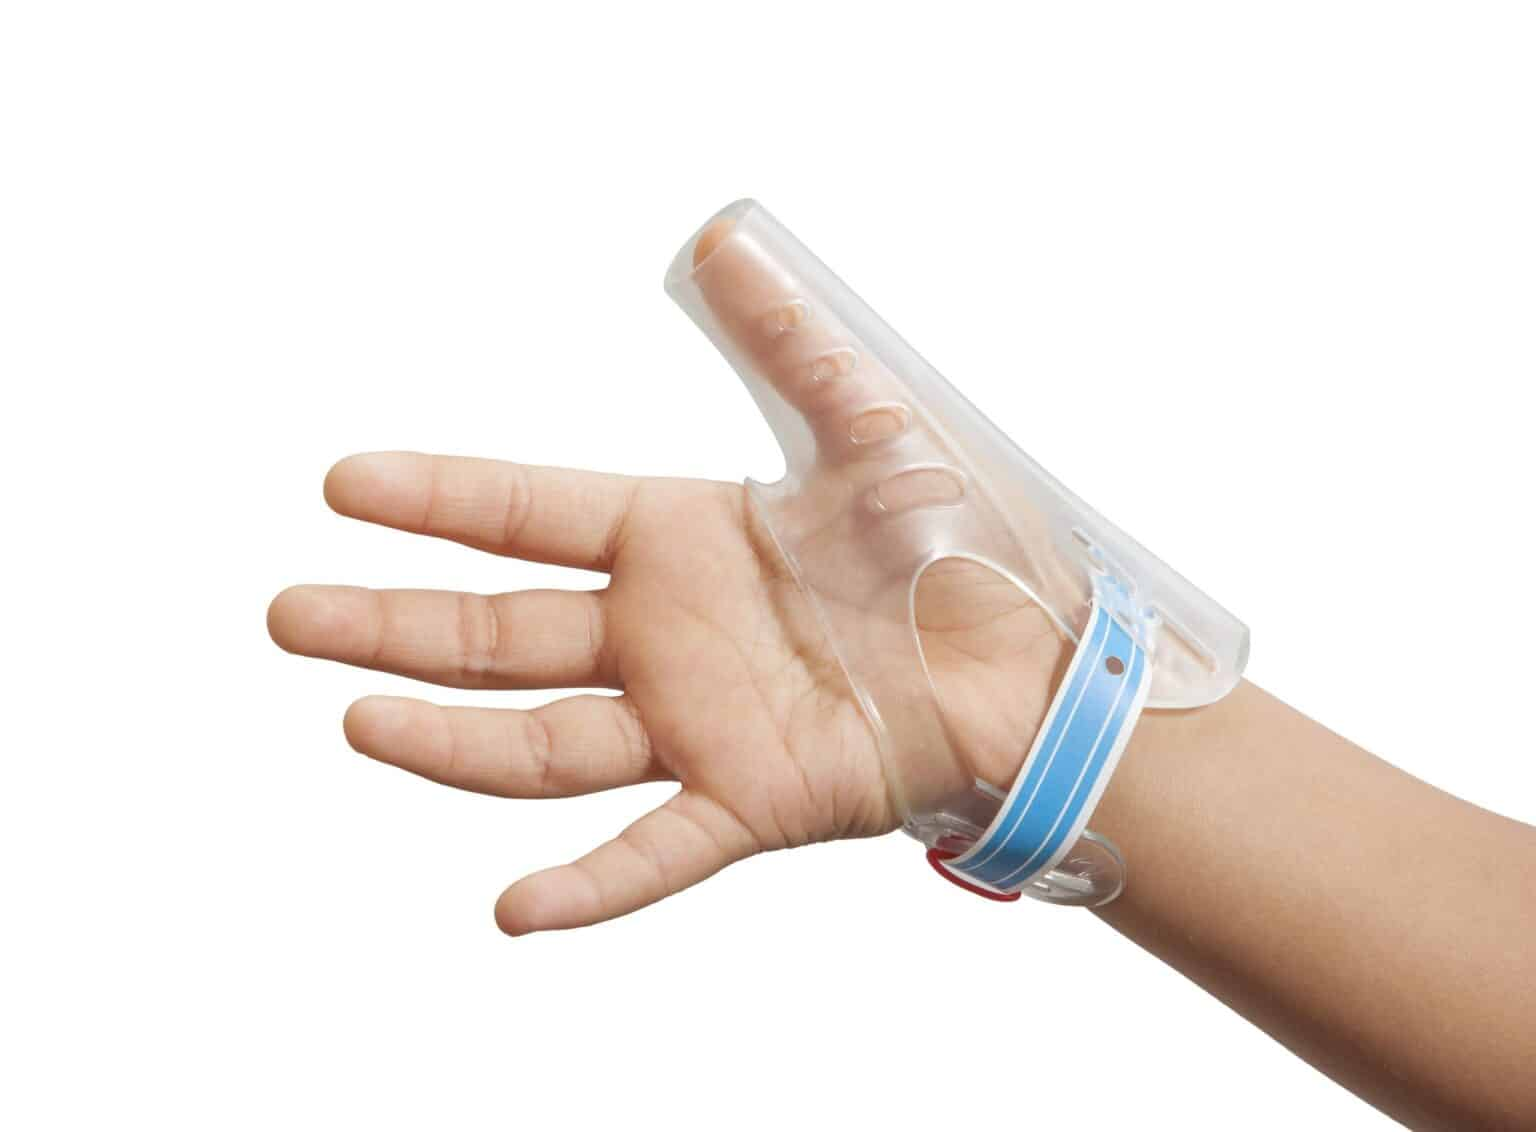 a child's hand, wearing TGuard